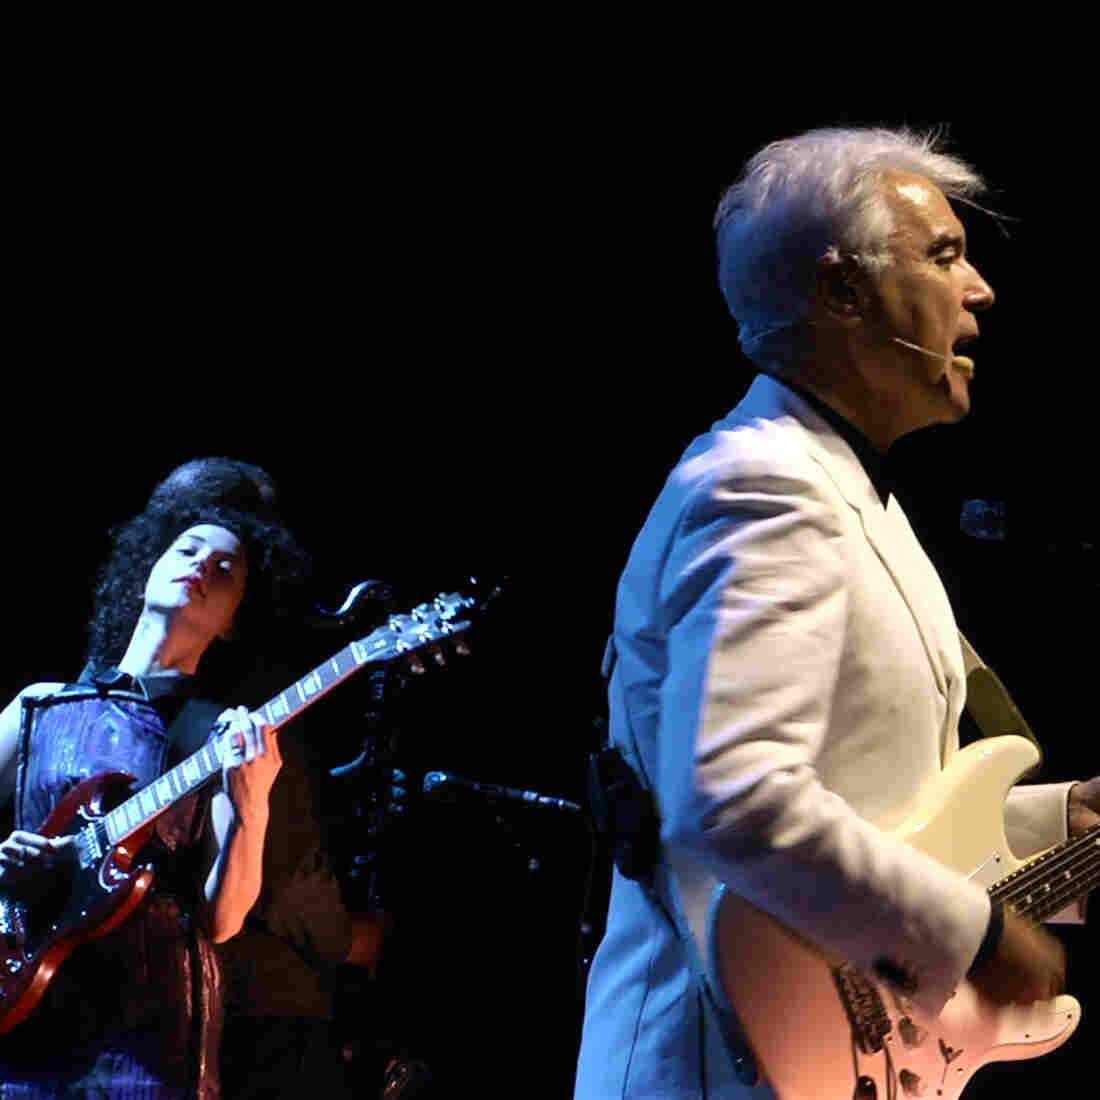 Annie Clark (of St. Vincent) and David Byrne perform together at The Music Center at Strathmore in North Bethesda, Md., on Sept. 30, 2012.